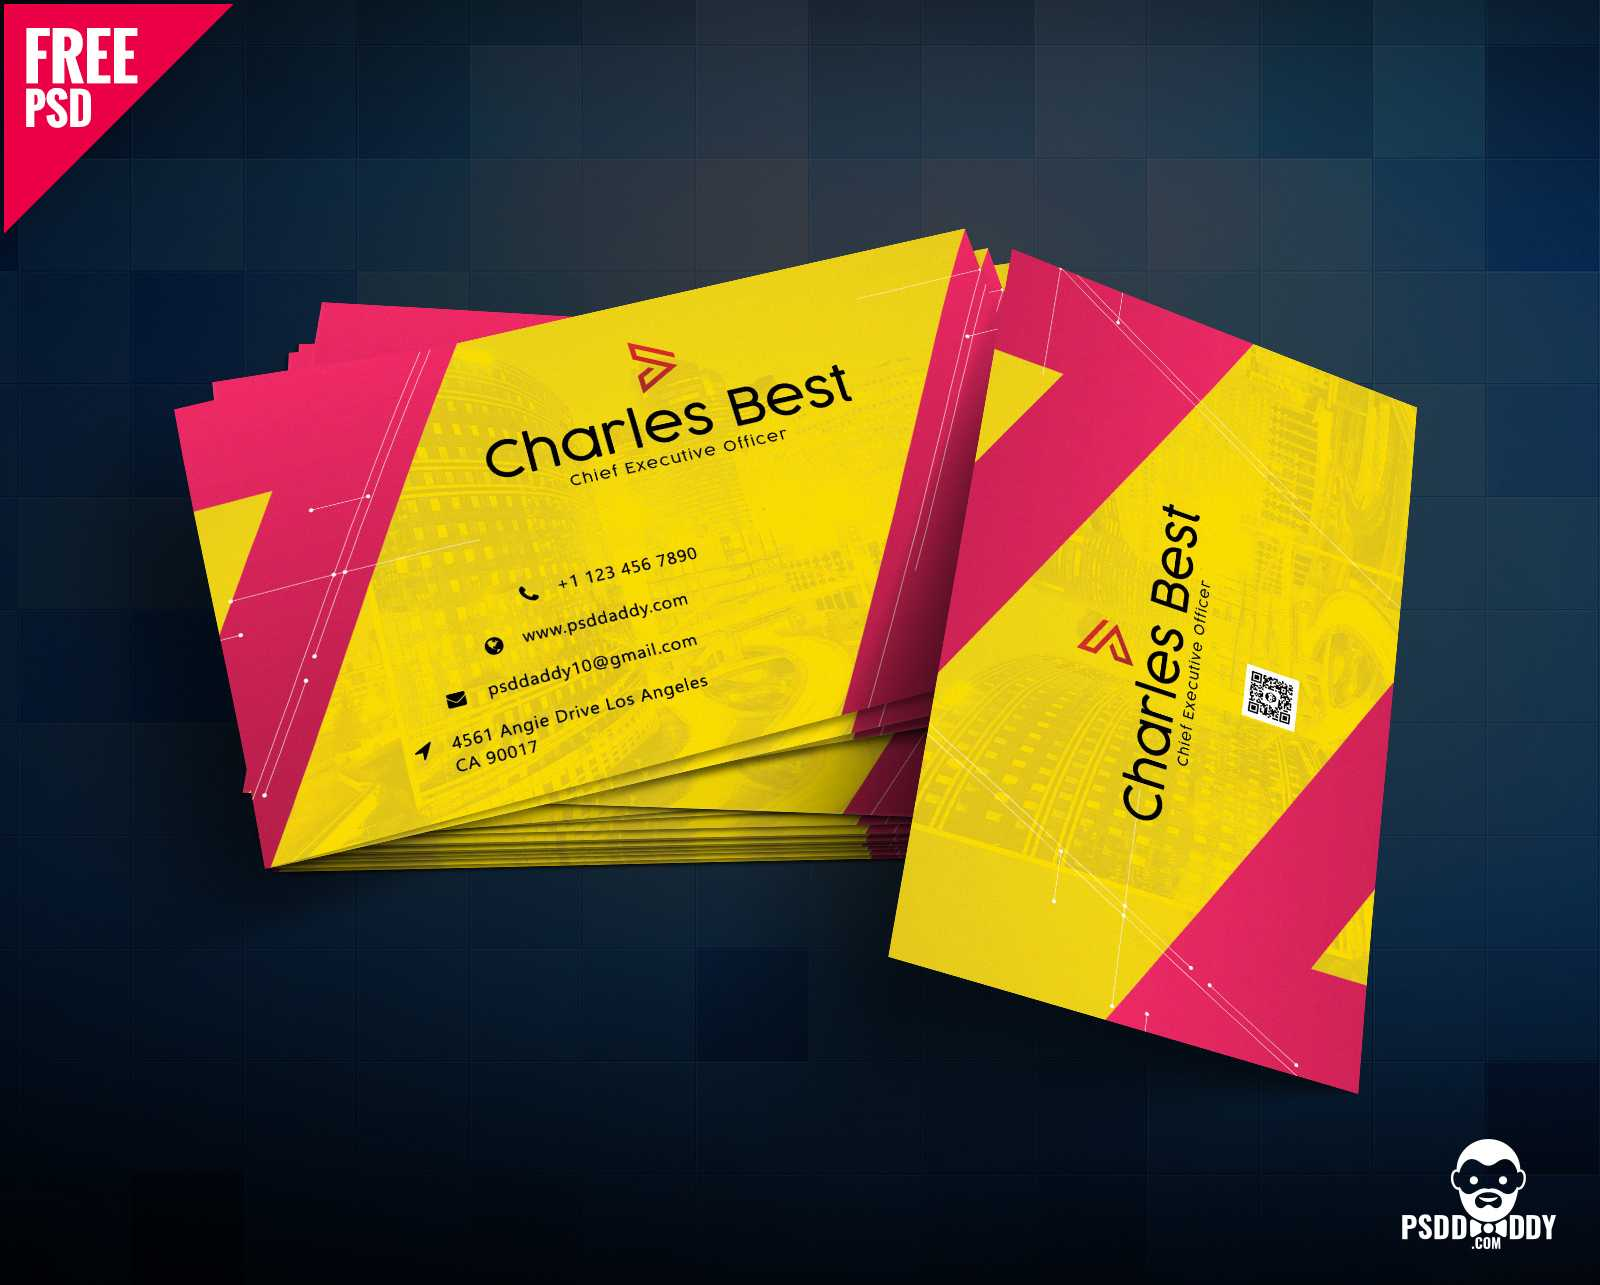 Download] Creative Business Card Free Psd | Psddaddy Pertaining To Business Card Size Template Psd